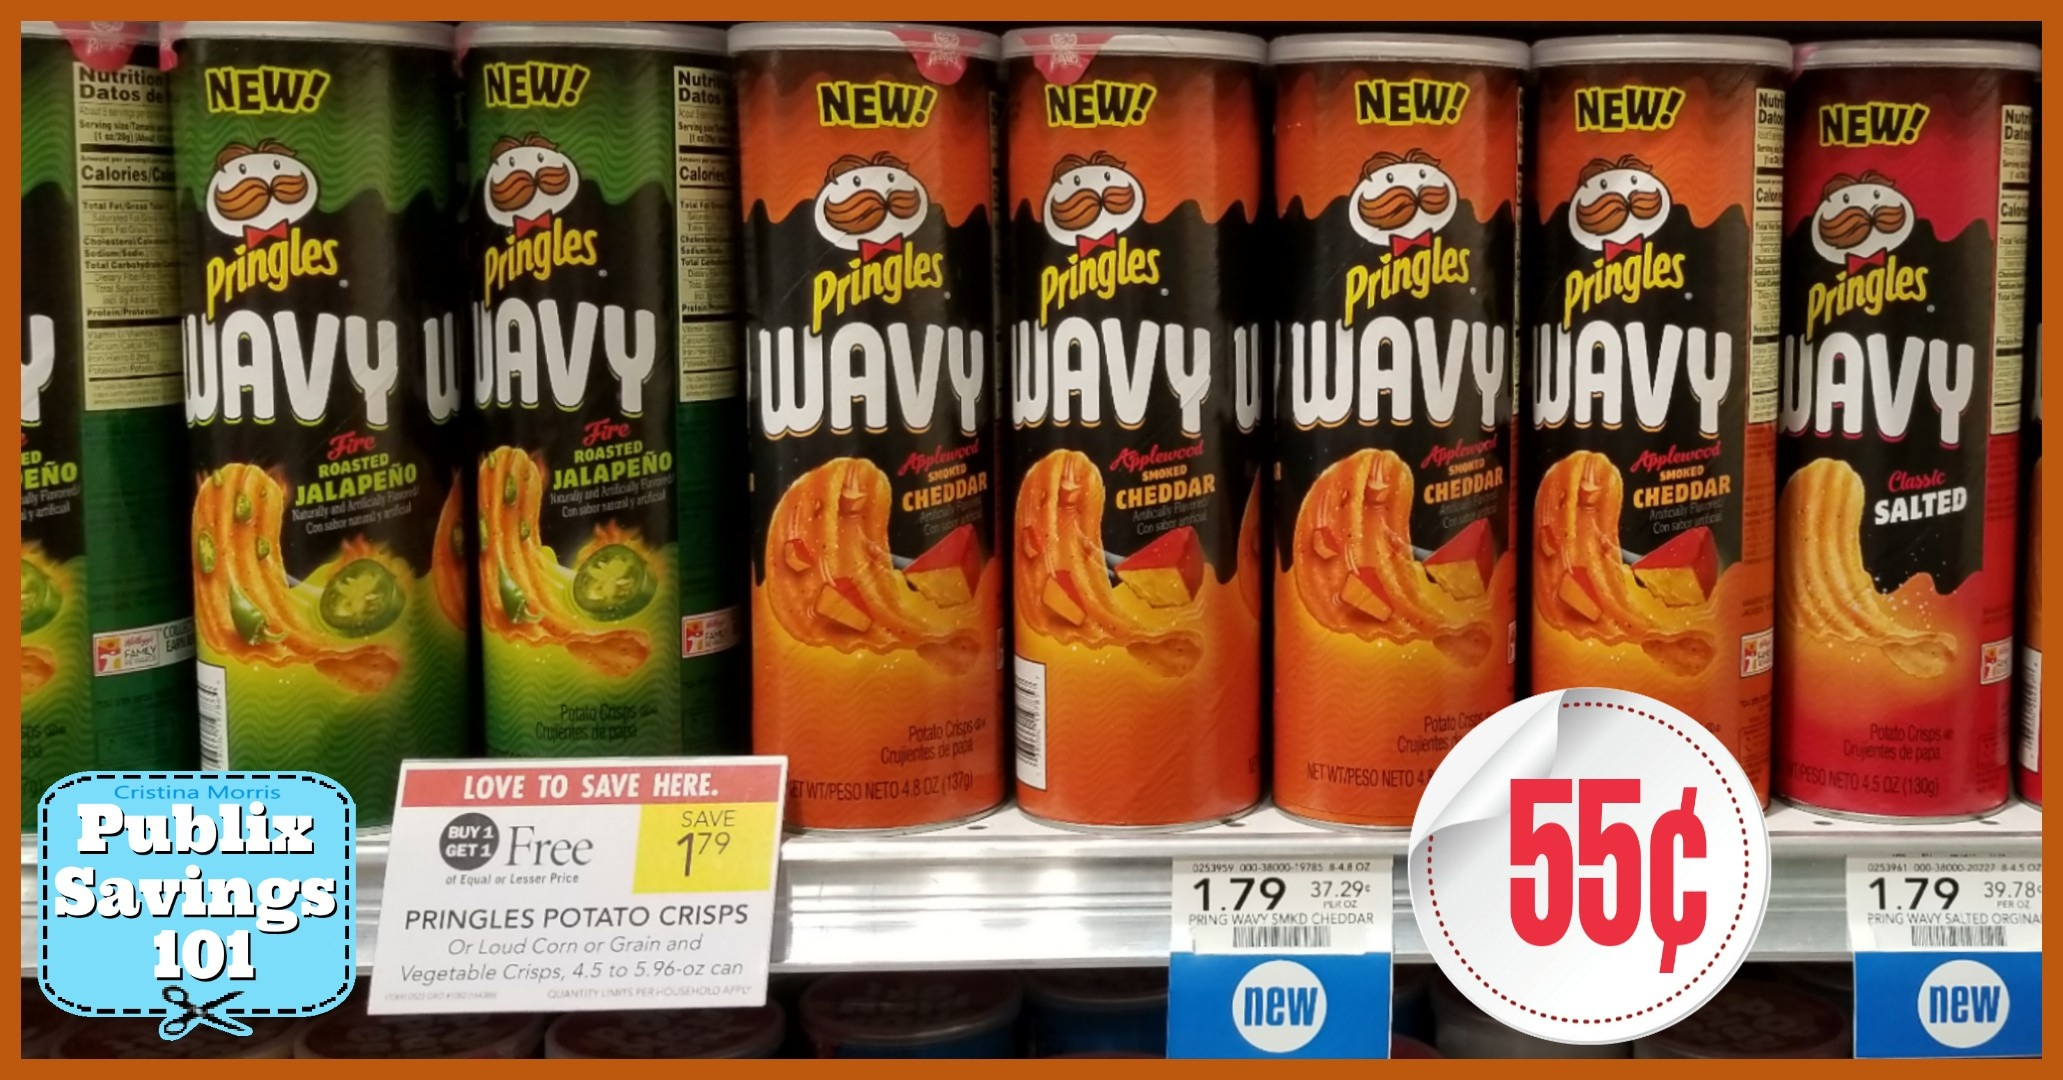 Pringles Wavy – Only 55¢ Each | Publix Savings 101 - Free Printable Pringles Coupons